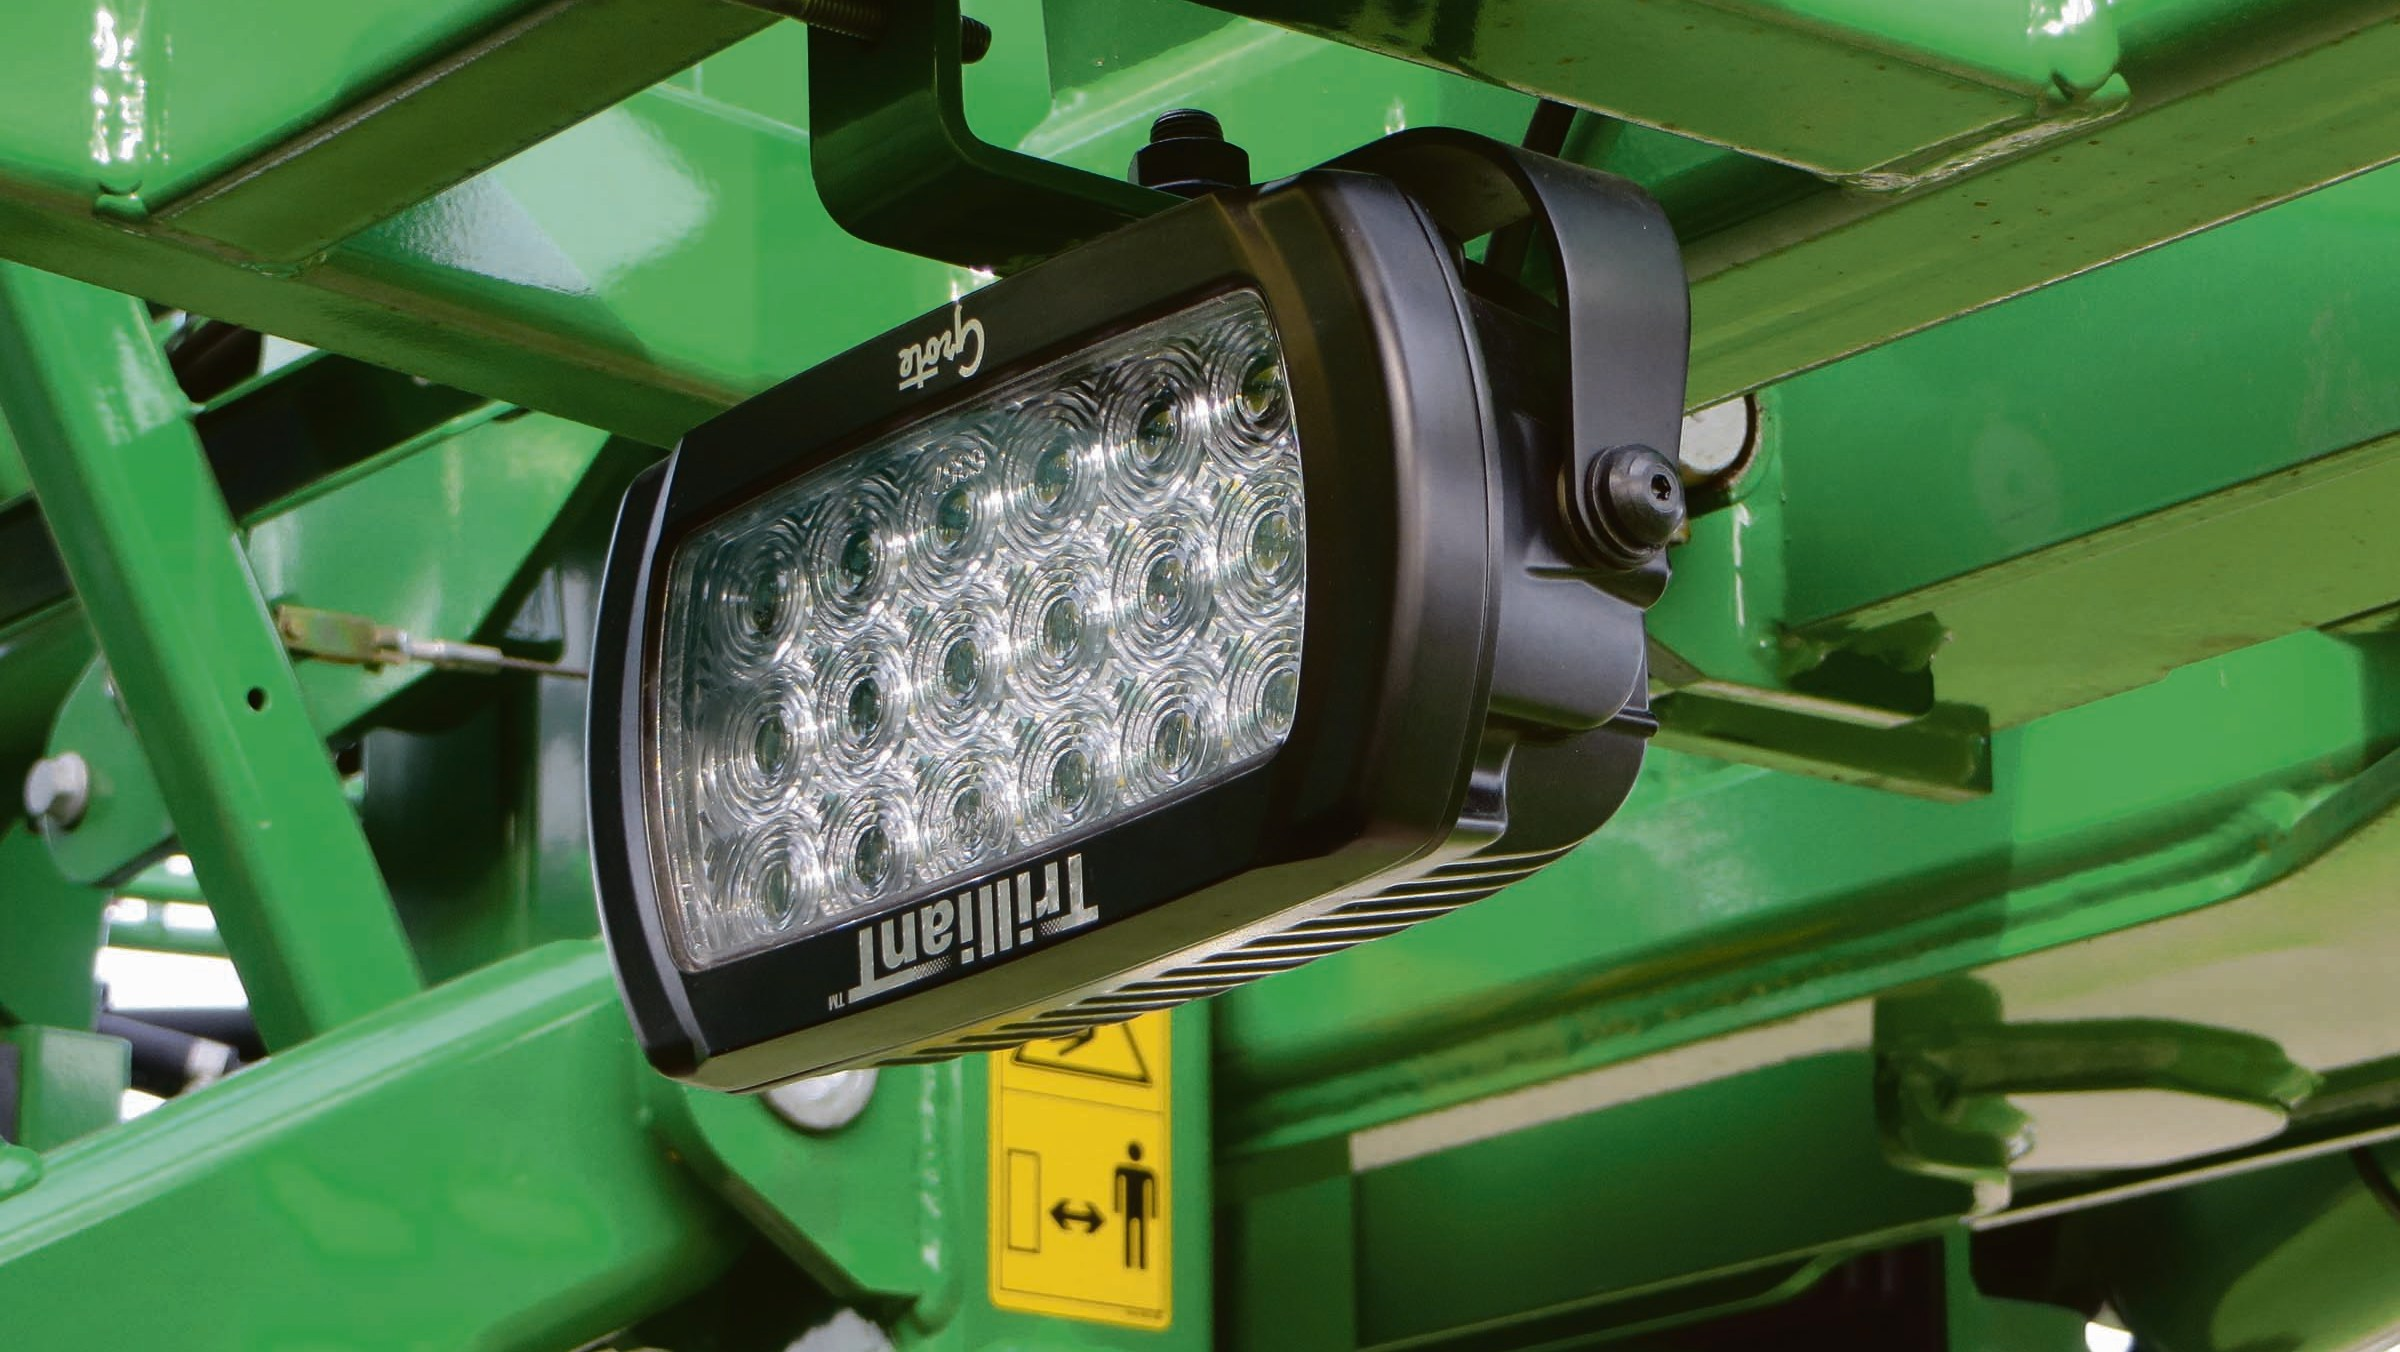 John Deere Hid Lights : Sprayers spreaders second generation sprayer builds on